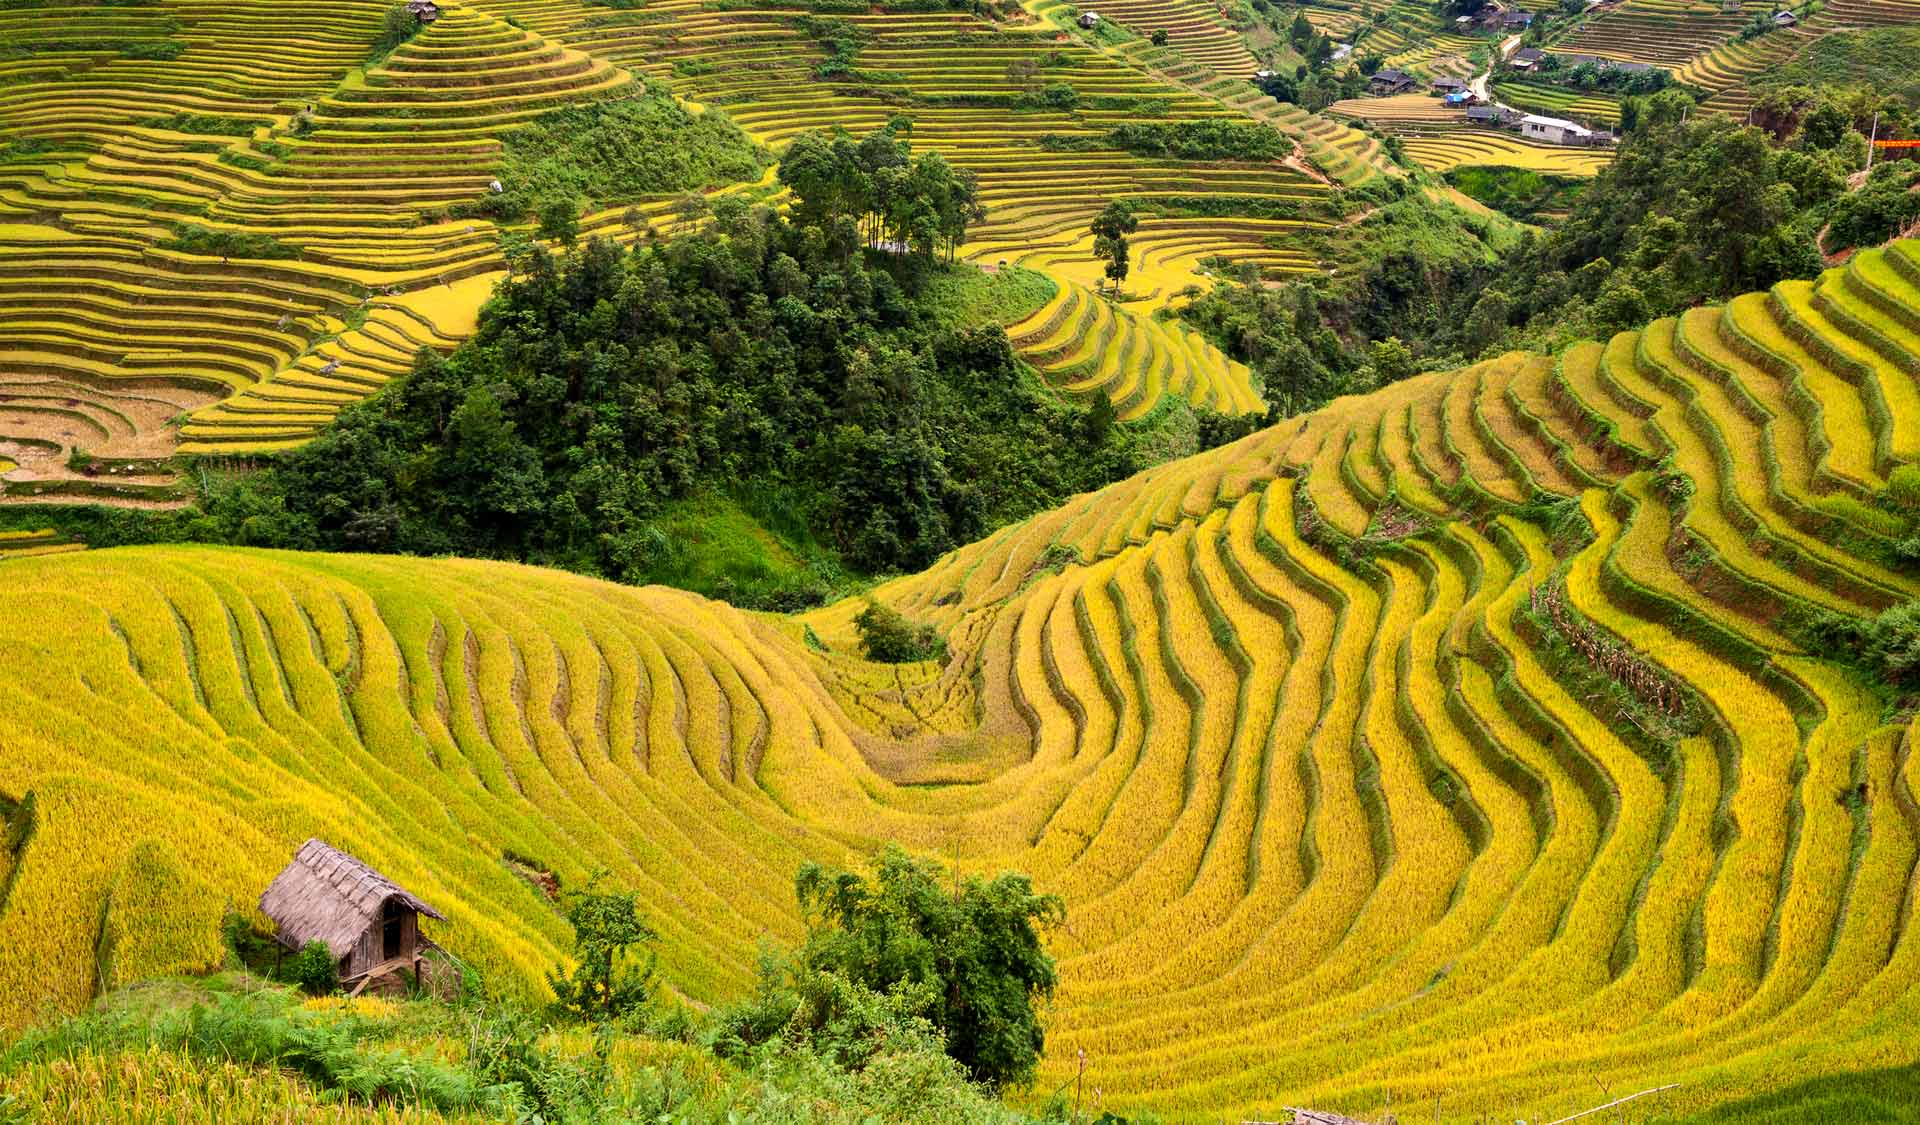 Terraces of Grain. Samosir Island North Sumatra, Indonesia.